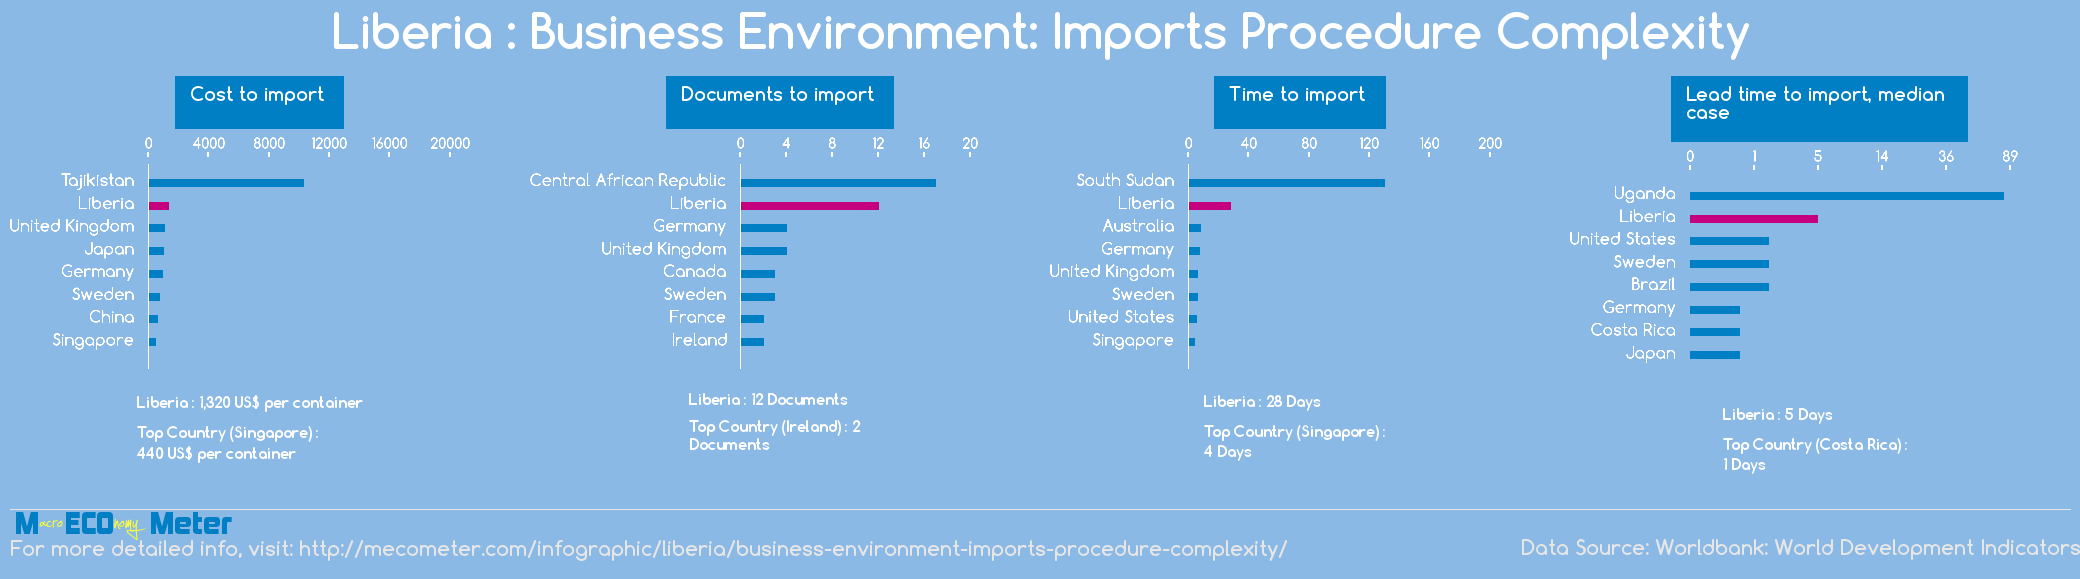 Liberia : Business Environment: Imports Procedure Complexity